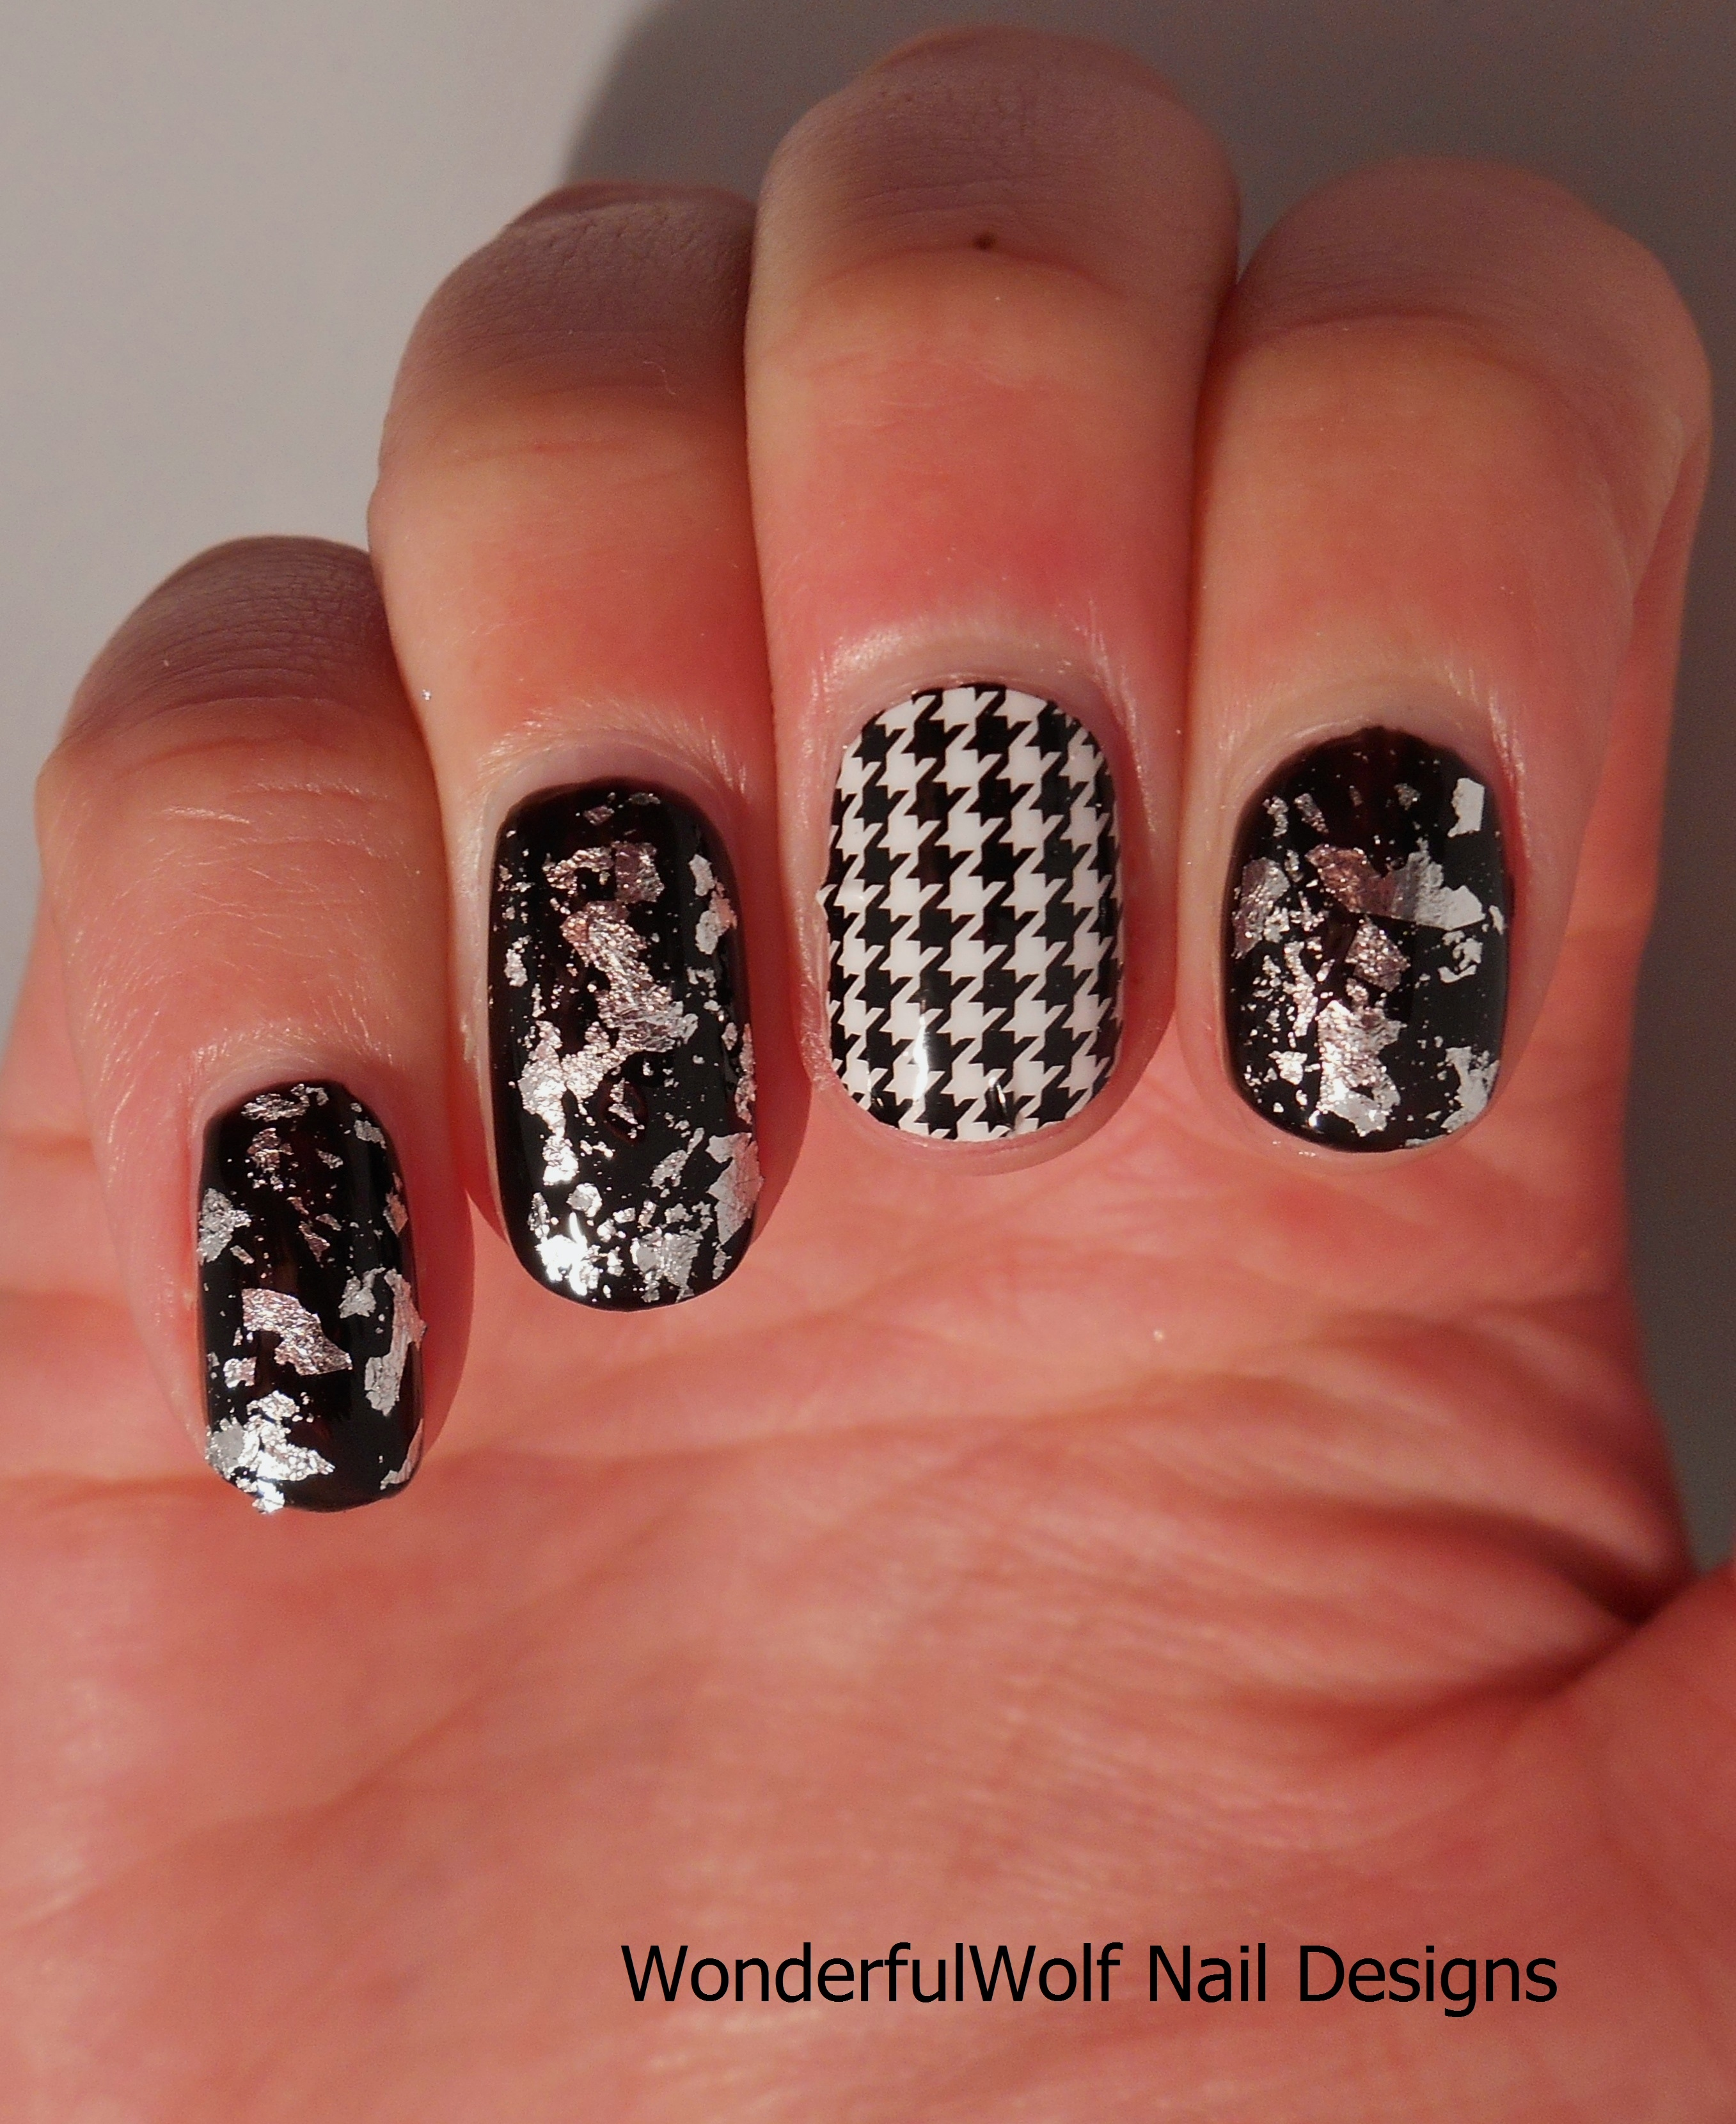 Silver and Black Nail Designs – WonderfulWolf